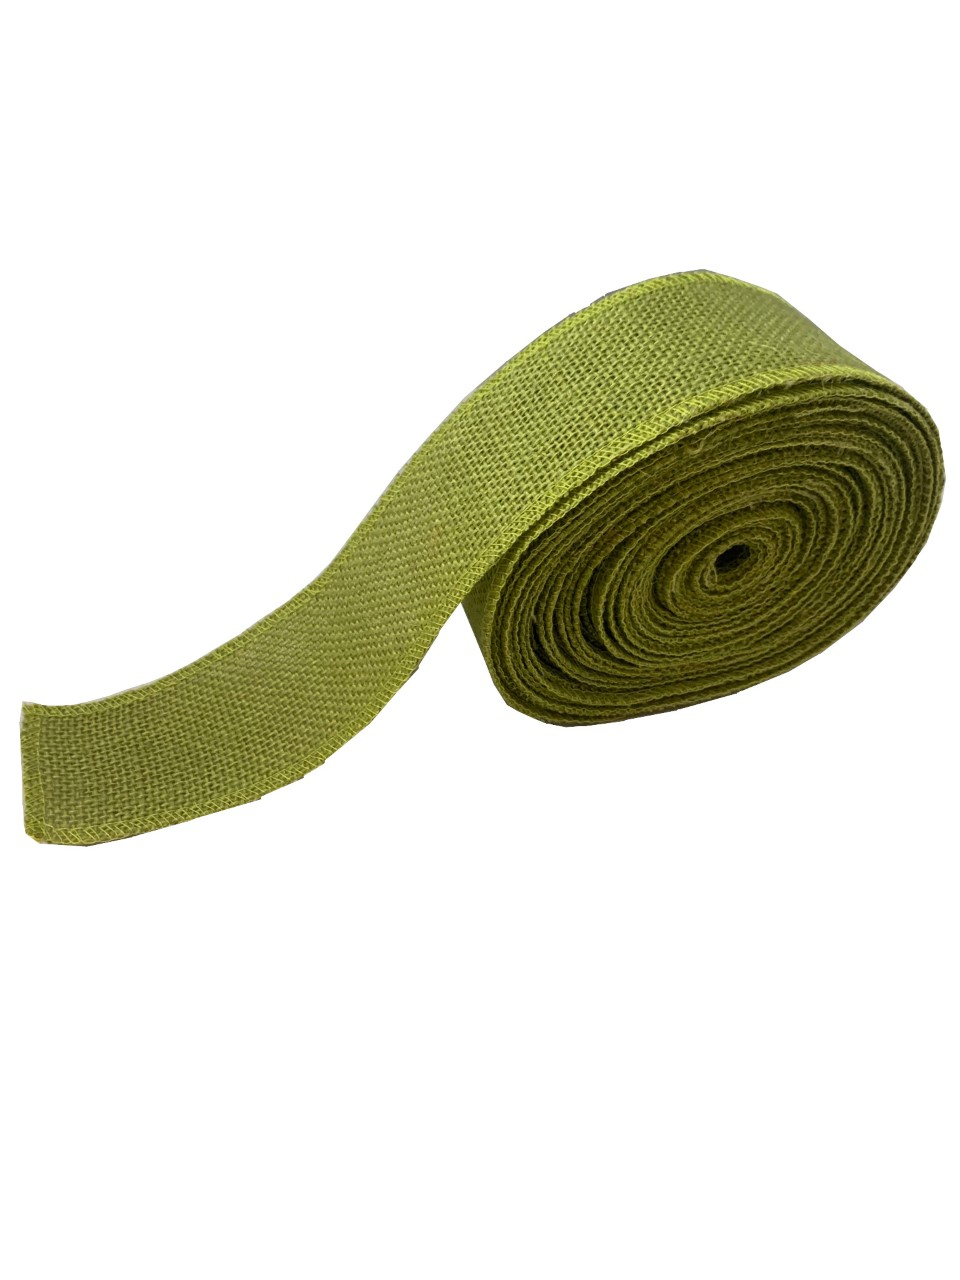 "2"" Avocado Burlap Ribbon - 10 Yards (Serged) Made in USA"